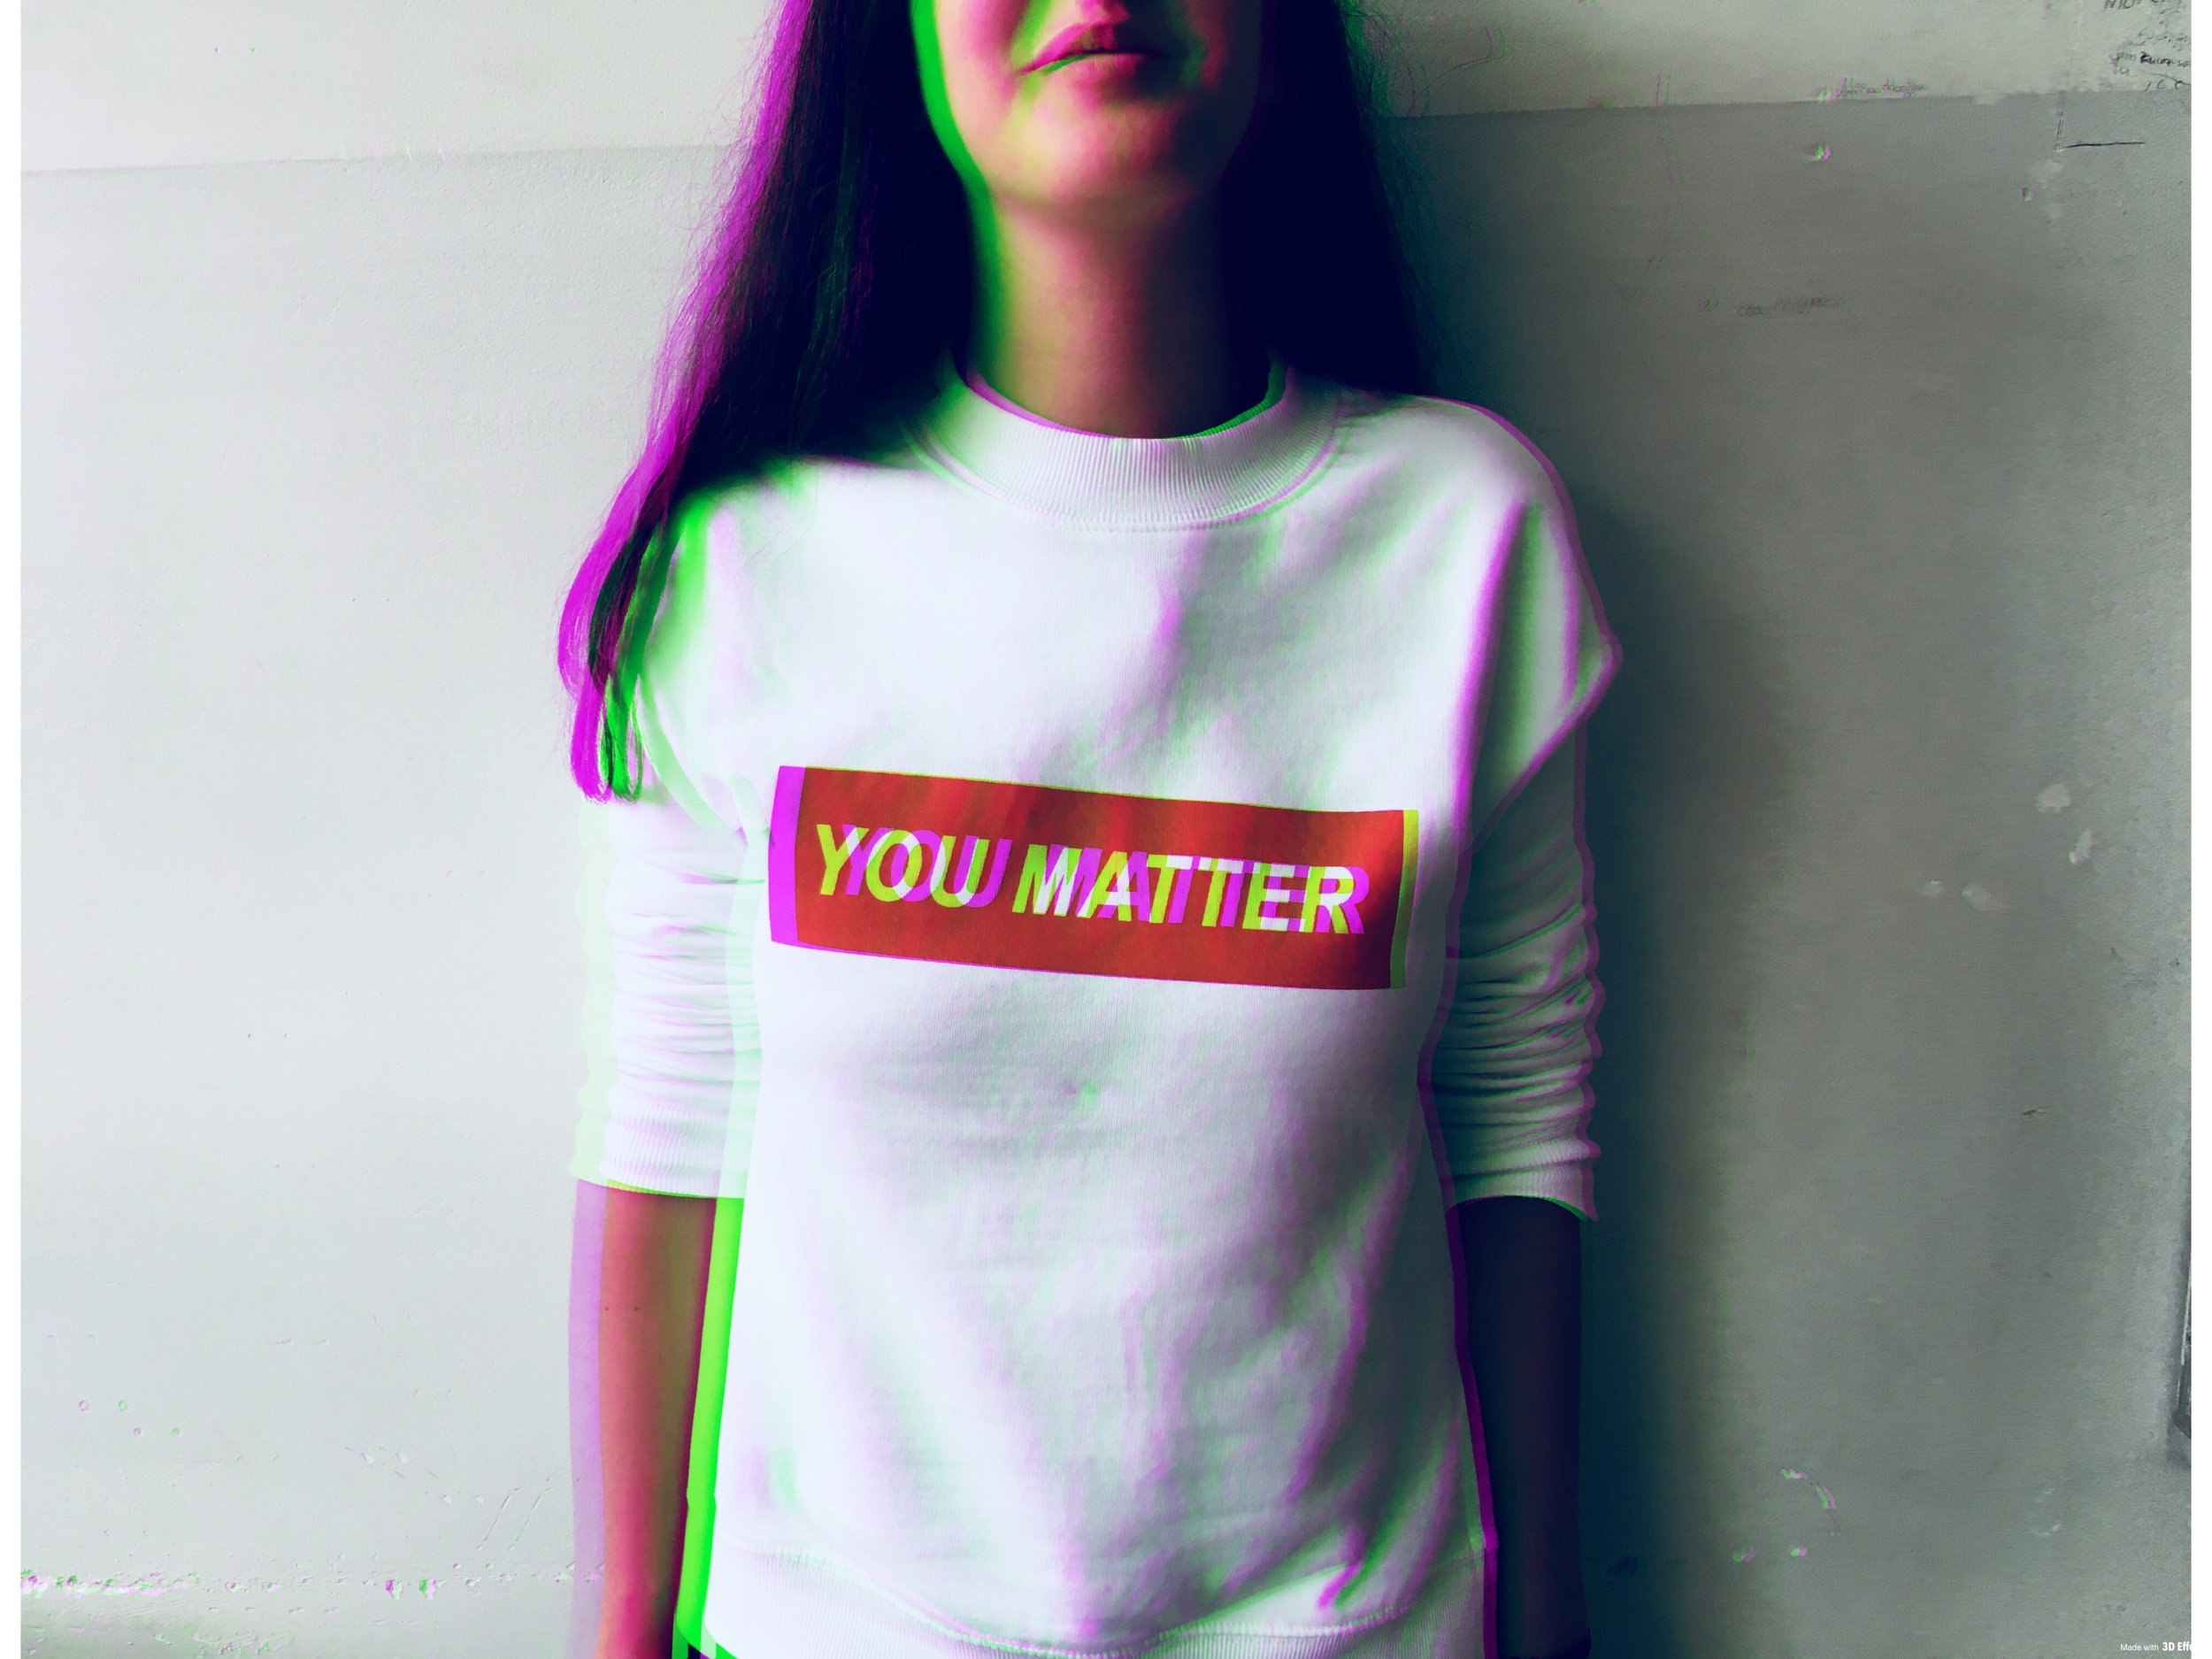 "a blurred woman with dark hair wearing a white t-shirt that says ""you matter"" on a red background"